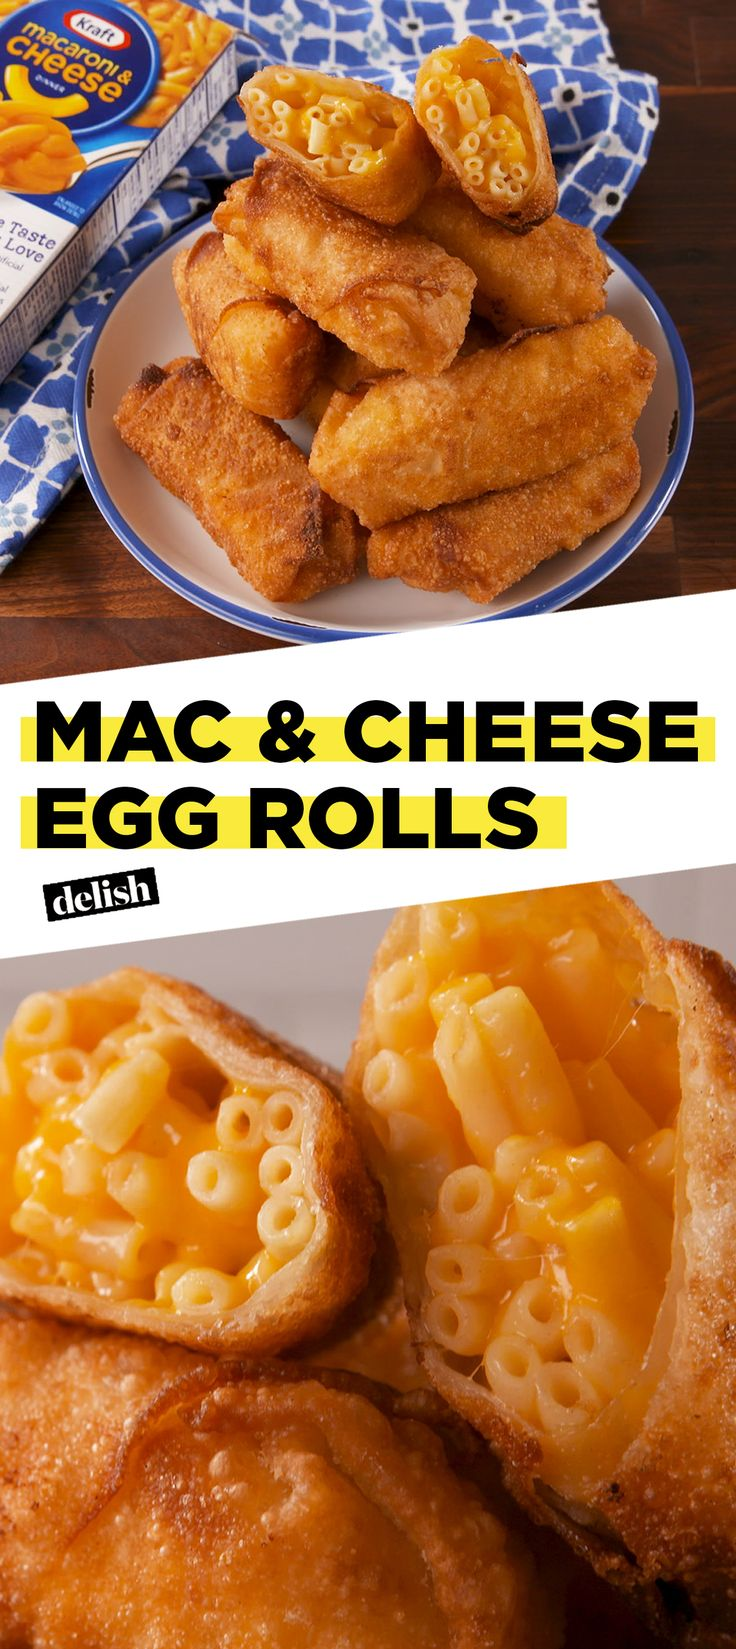 Mac & Cheese + Egg Rolls = the best thing to happen to 2018. Get the recipe at Delish.com. #recipe #easyrecipe #pasta #macandcheese #cheese #macaroni #eggroll #snack #nostalgia #snacking